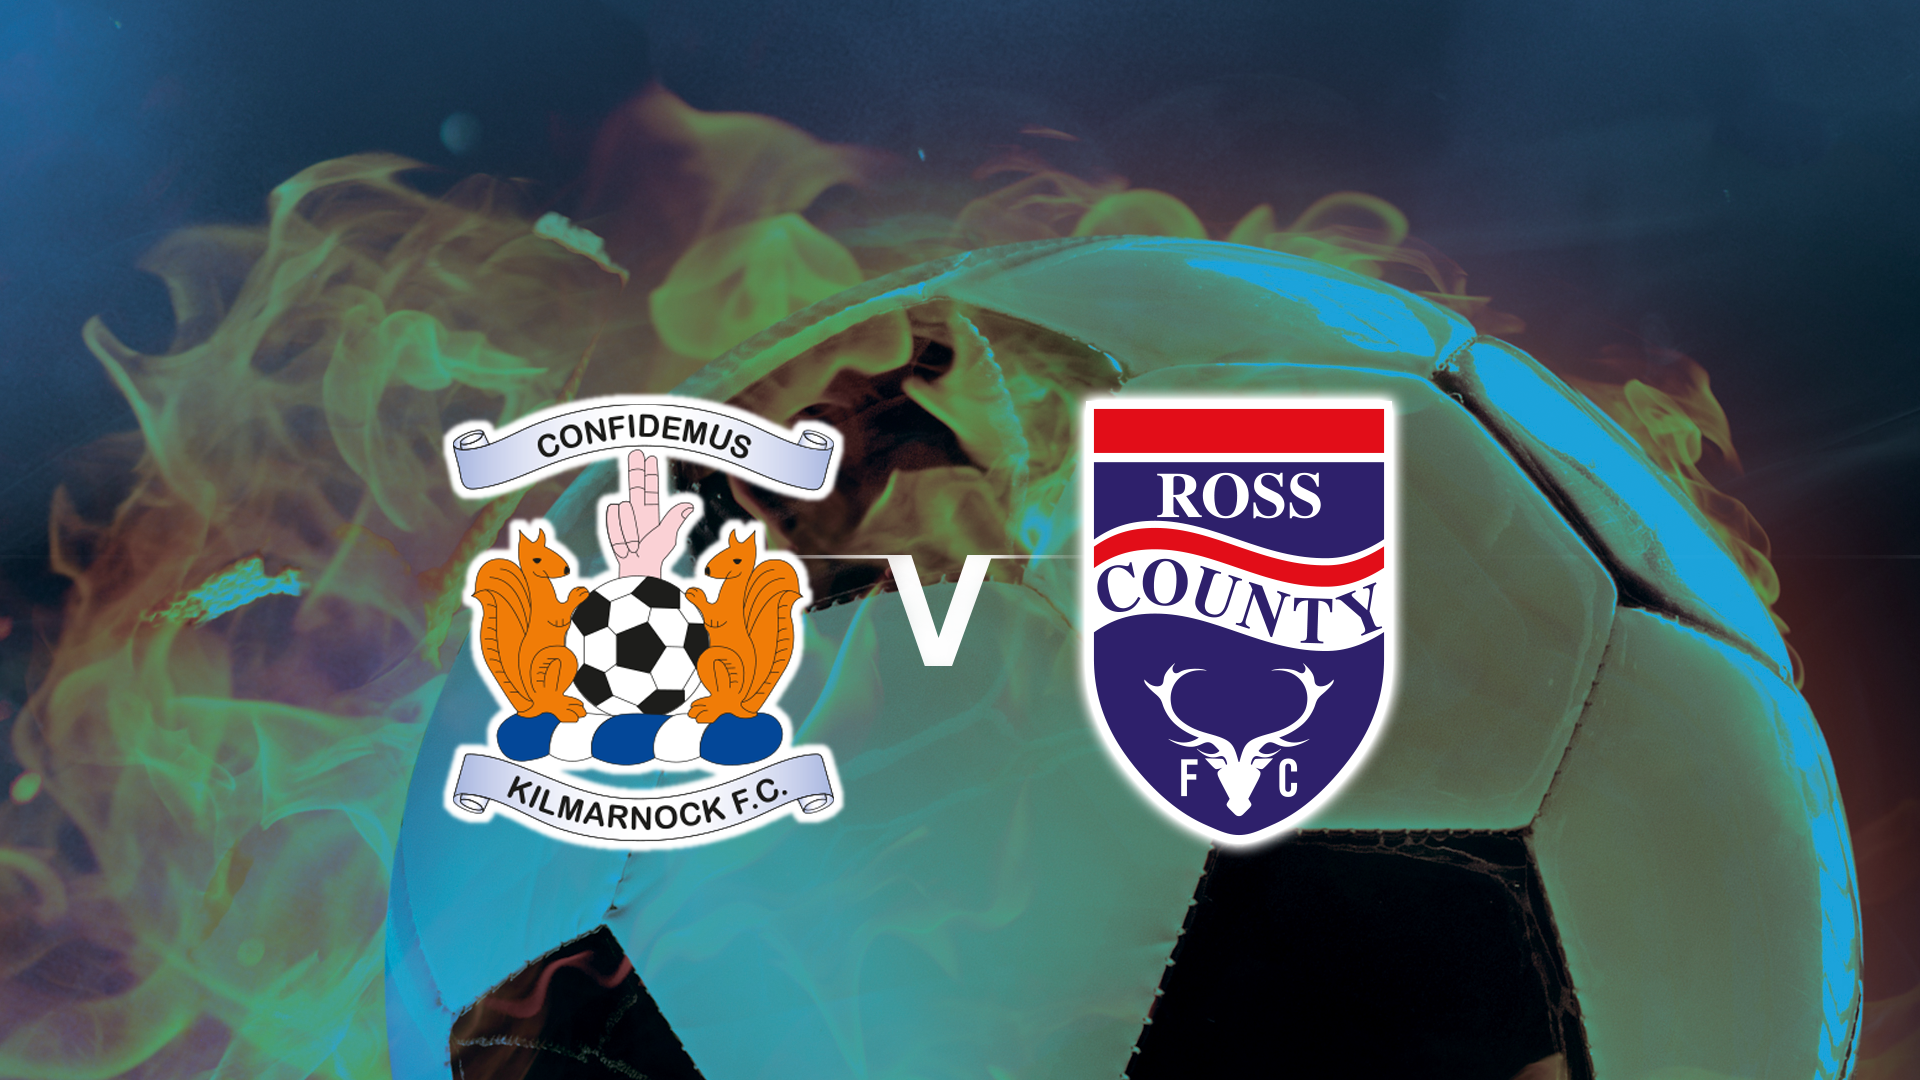 Match Day Offers, Kilmarnock Vs Ross County - Saturday 28th September